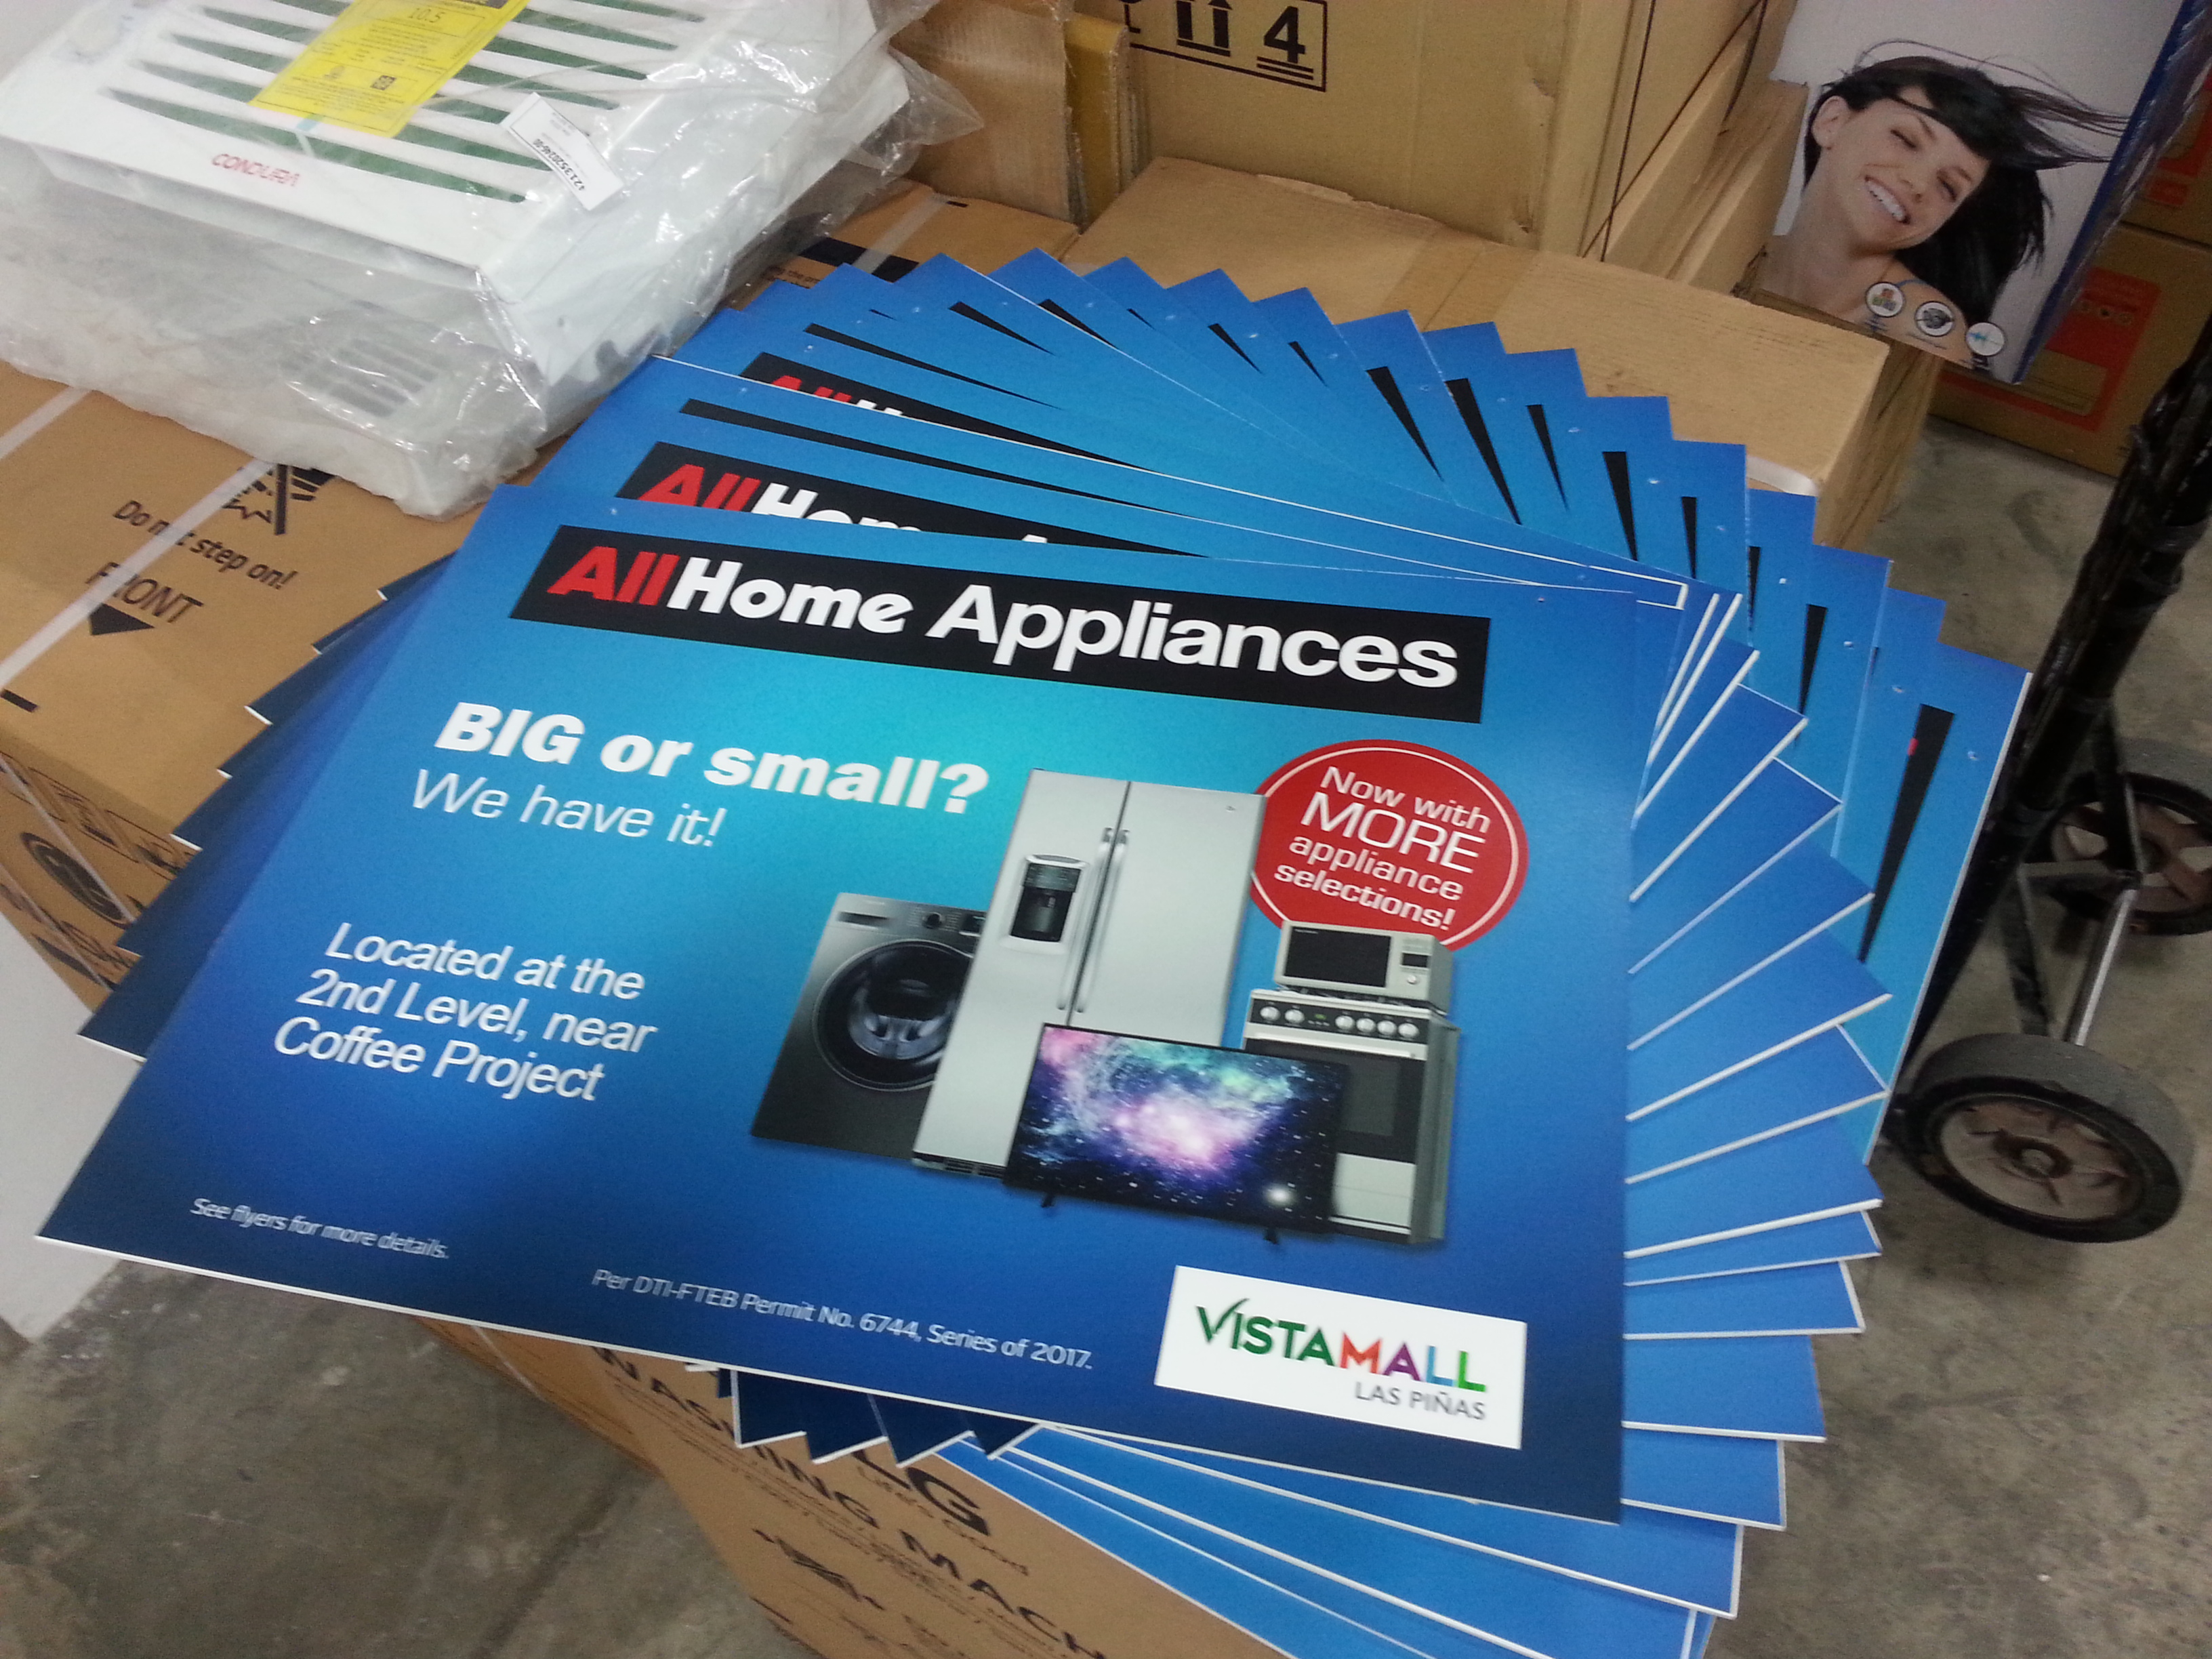 All Home Appliances